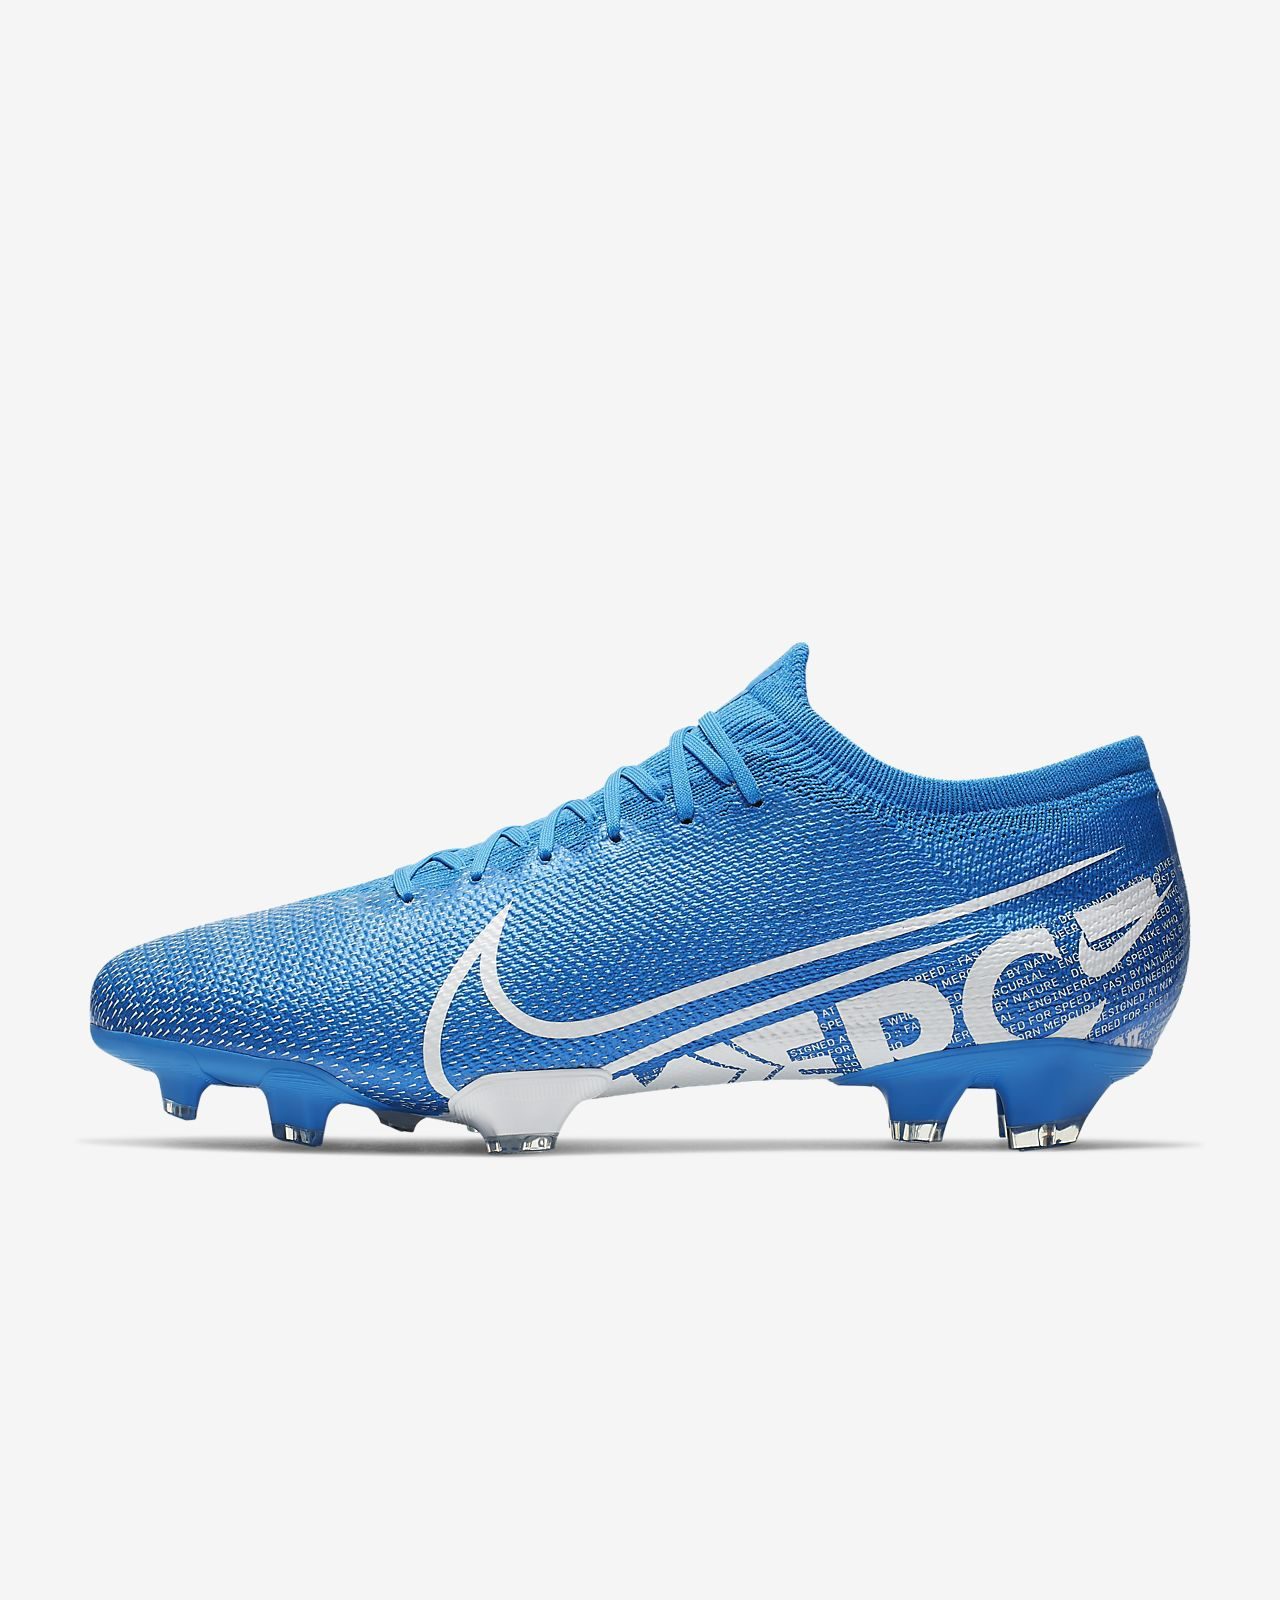 cheaper better wholesale dealer Nike Mercurial Vapor 13 Pro FG Fußballschuh für normalen Rasen